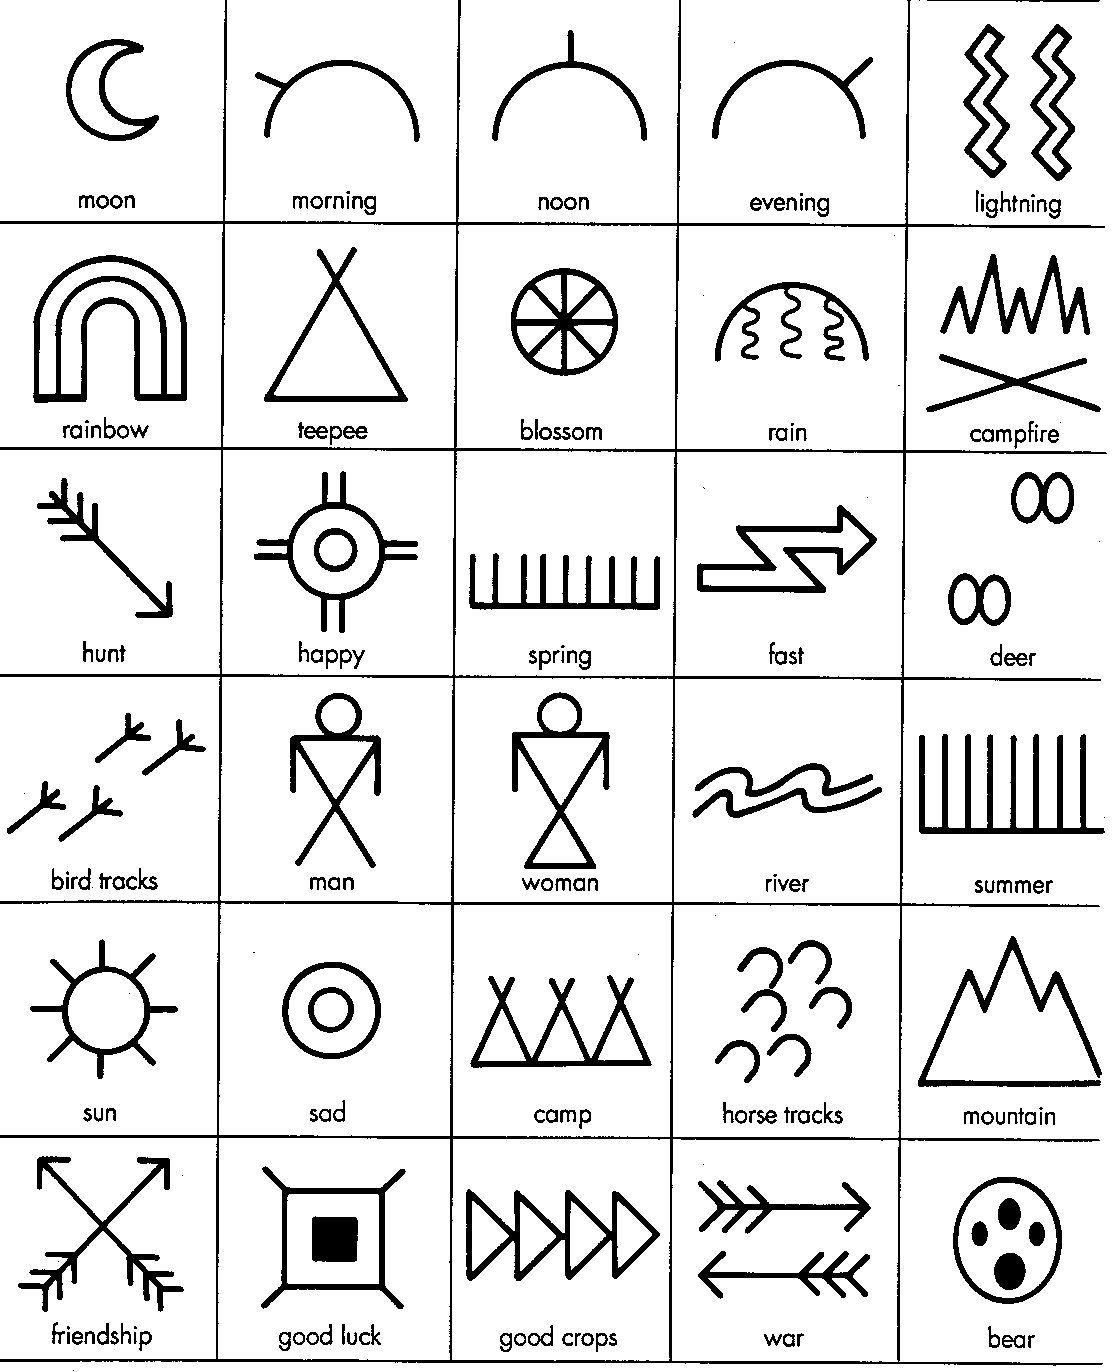 The meaning of symbol tattoos tattoos are great way expresses the meaning of symbol tattoos tattoos are great way expresses yourself especially with symbol tattoos biocorpaavc Image collections